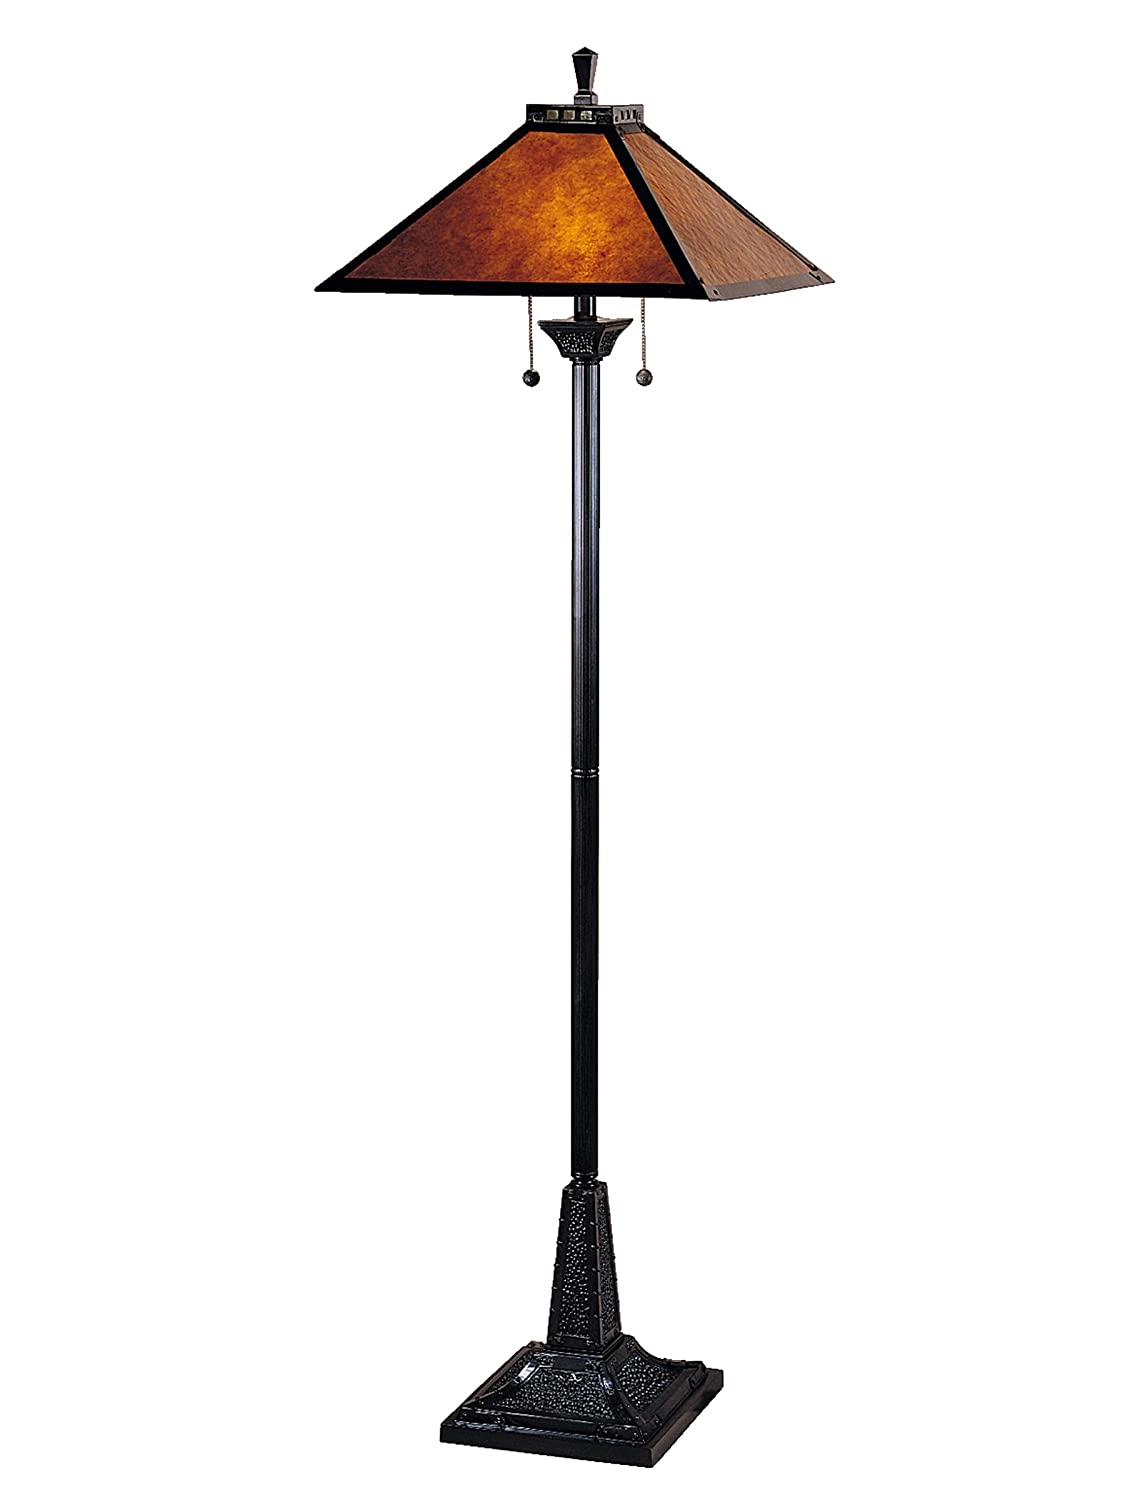 Dale Tiffany TF100176 Mica Camelot Floor Lamp, Mica Bronze and Mica Shade